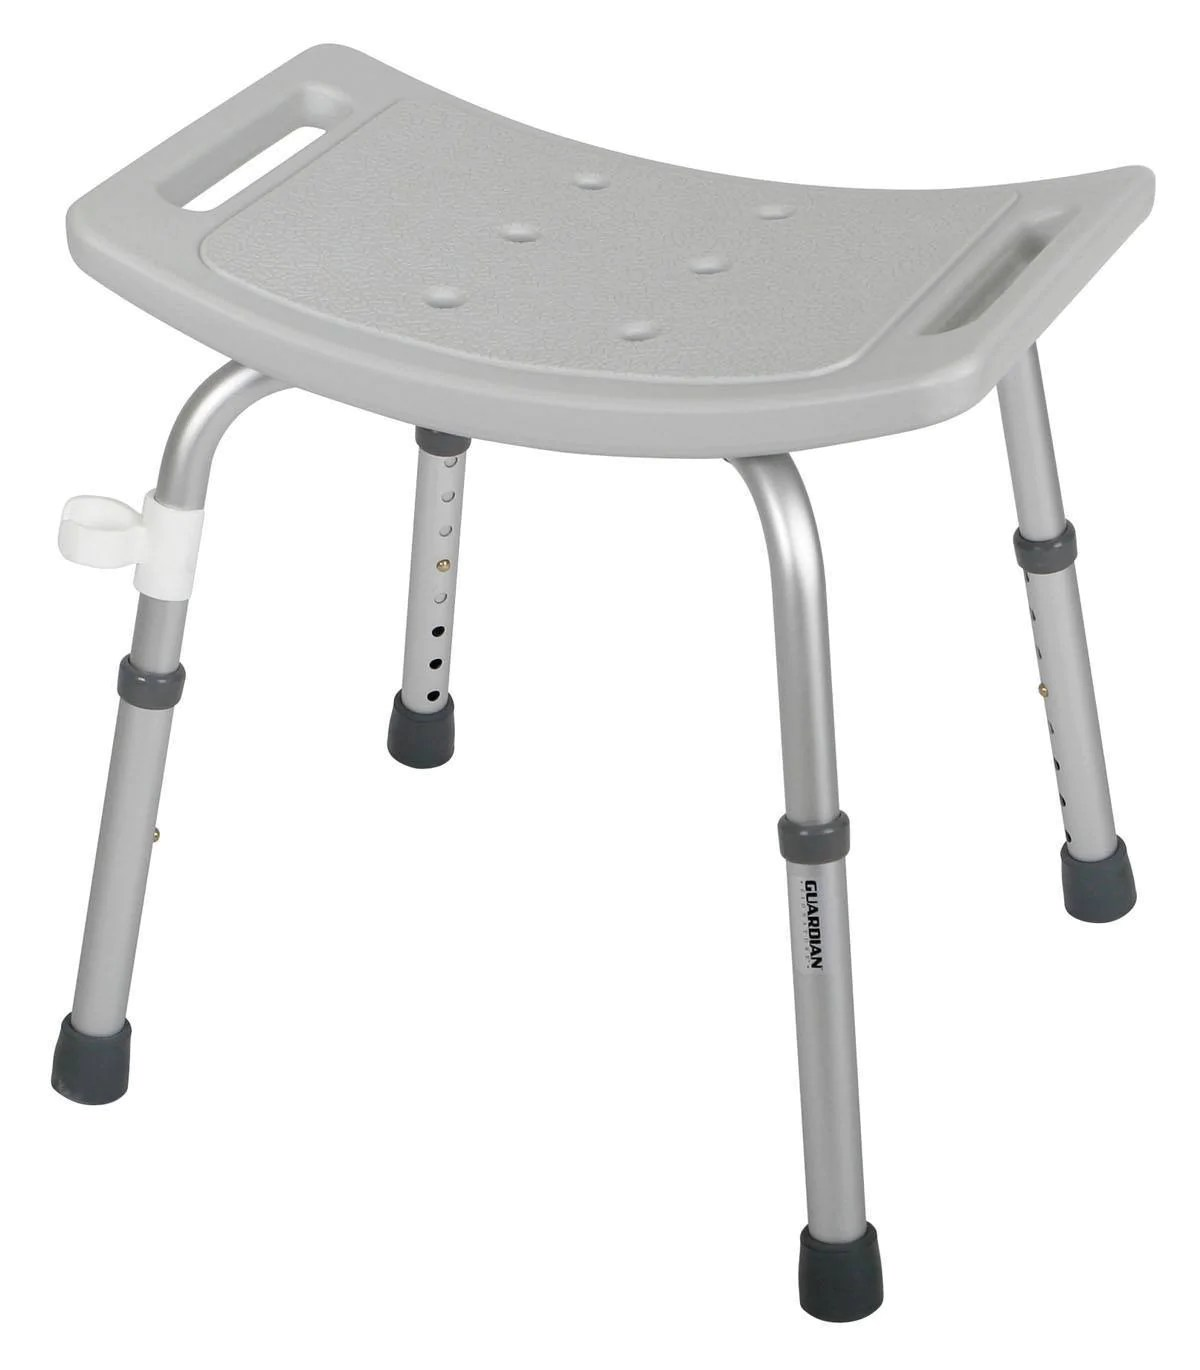 grey bathroom safety shower tub bench chair hook on table high guardian bath seat no back medability healthcare solutions